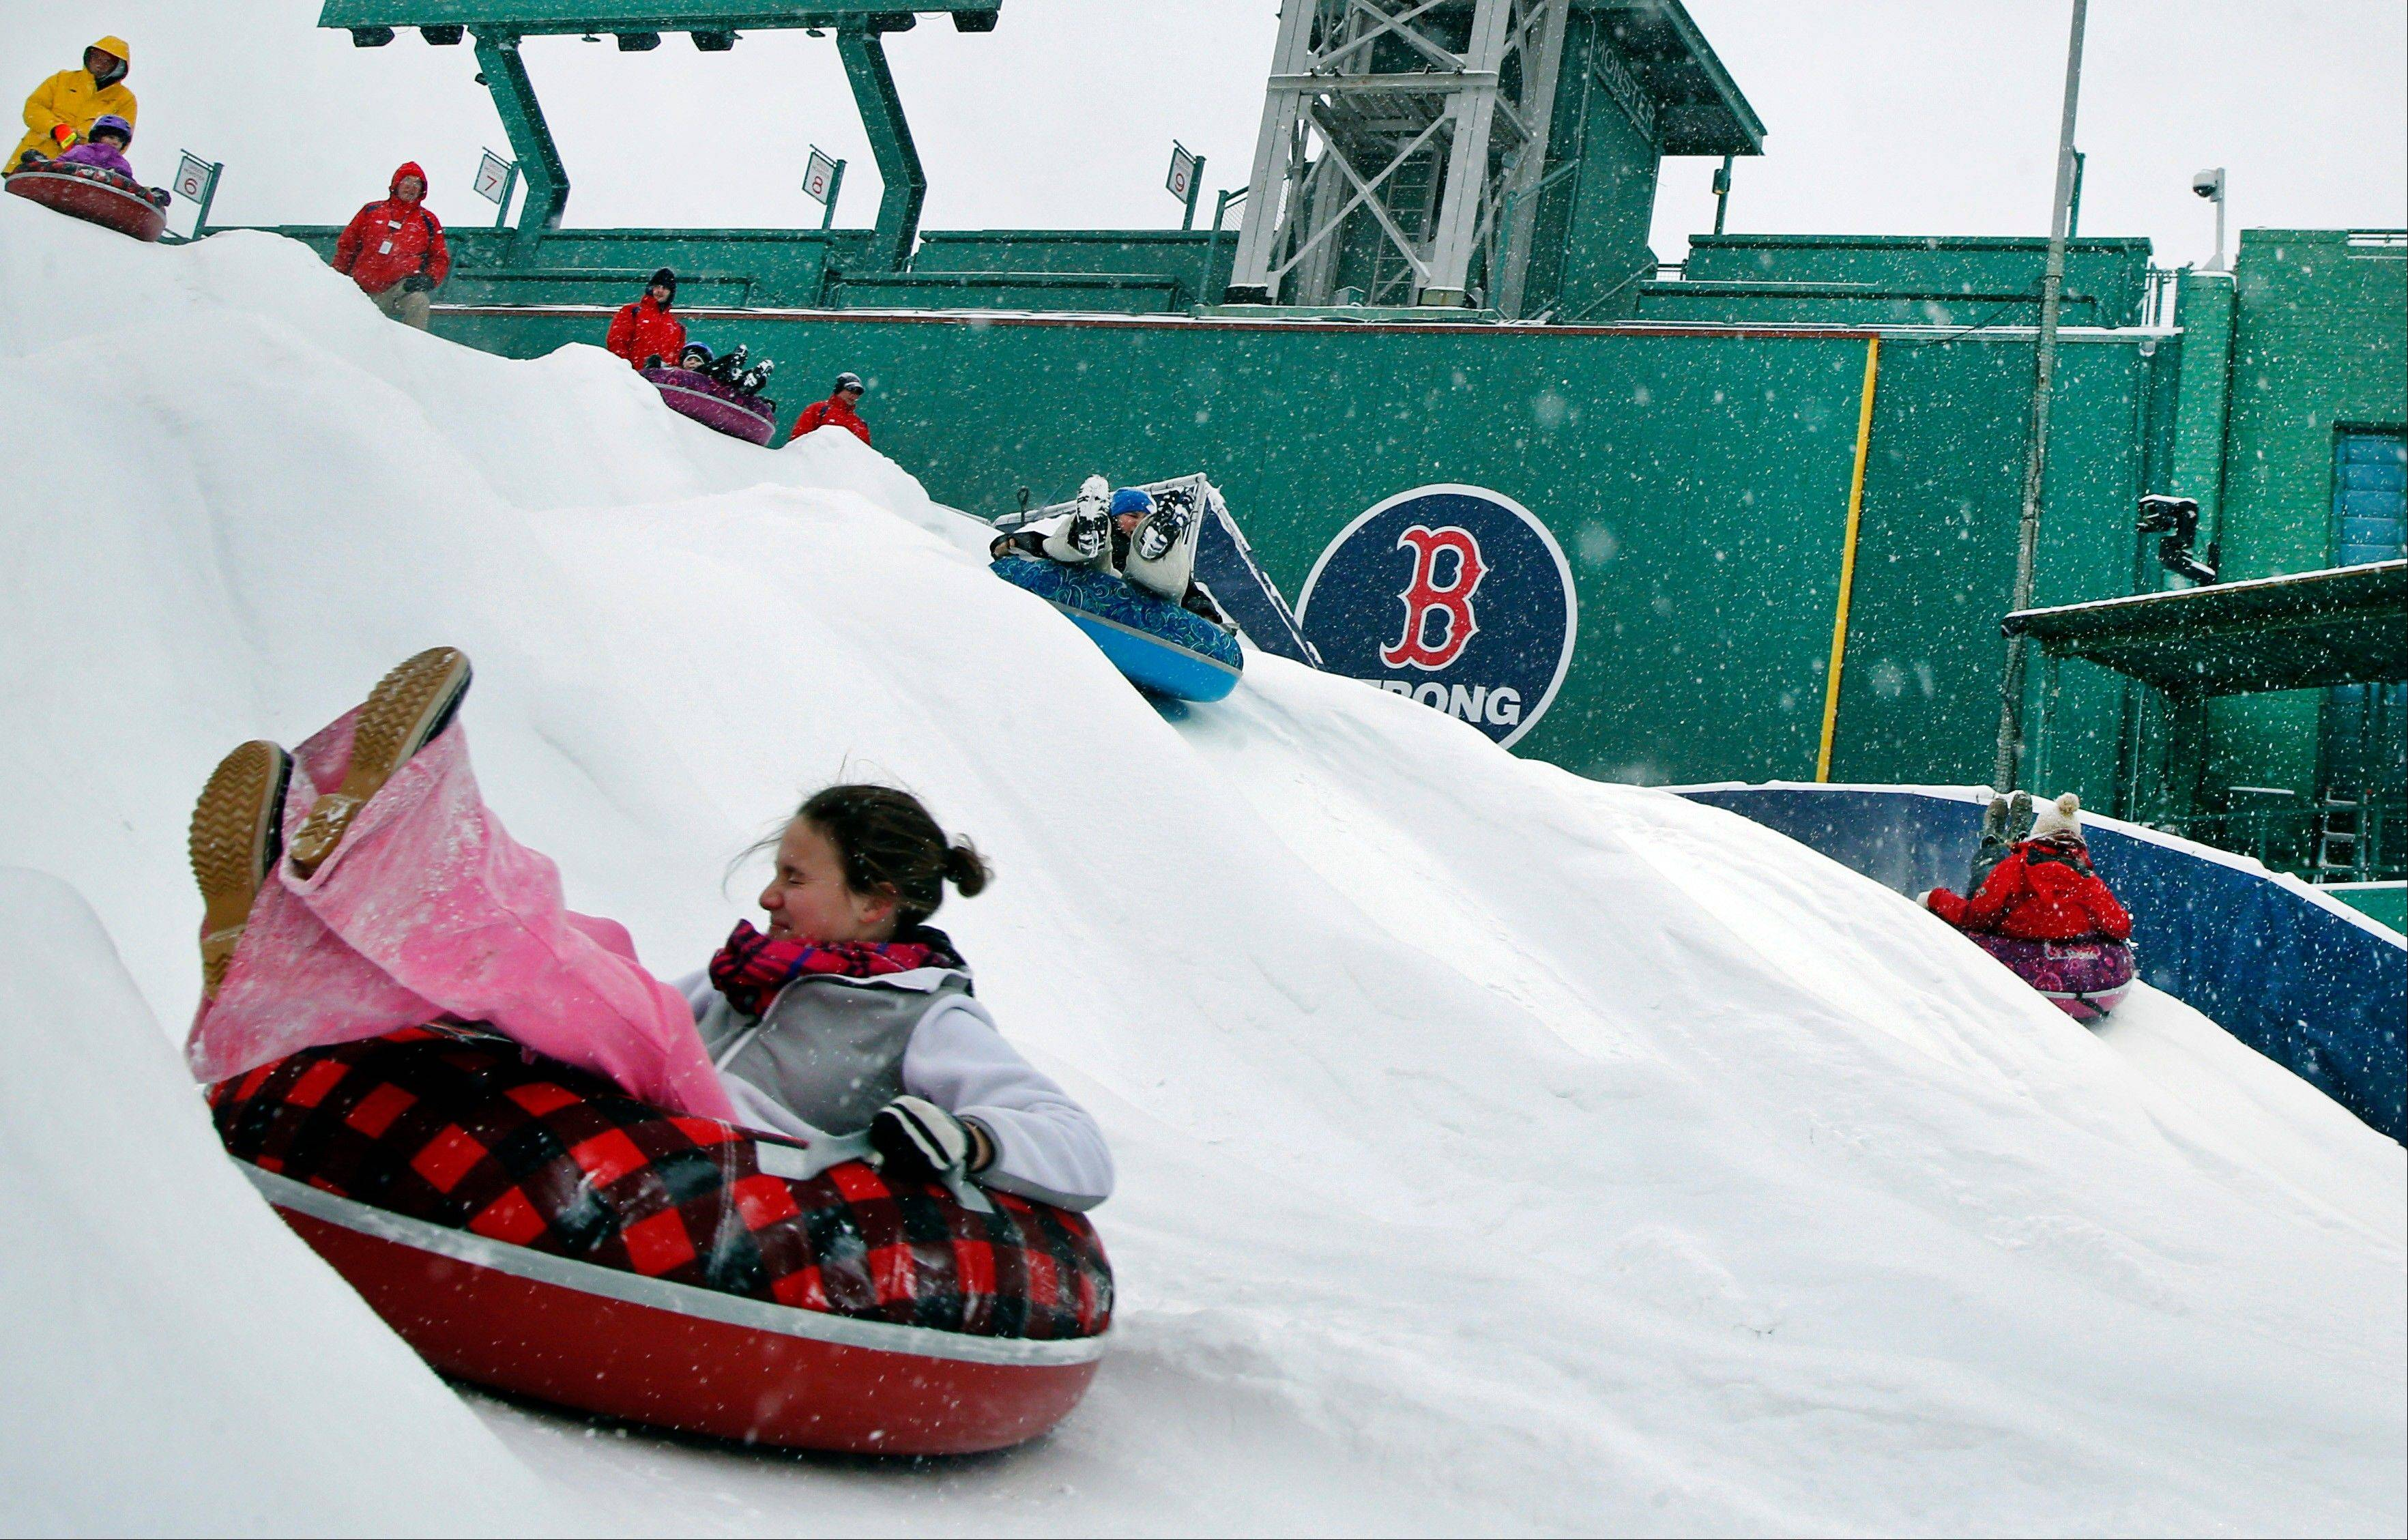 While these kids enjoyed a slide down the �Monster Sled� adjacent to the left field wall as snow fell at Fenway Park in Boston on Thursday, the heavy snowfall forced stadium operators to cancel an outdoor hockey game scheduled there.